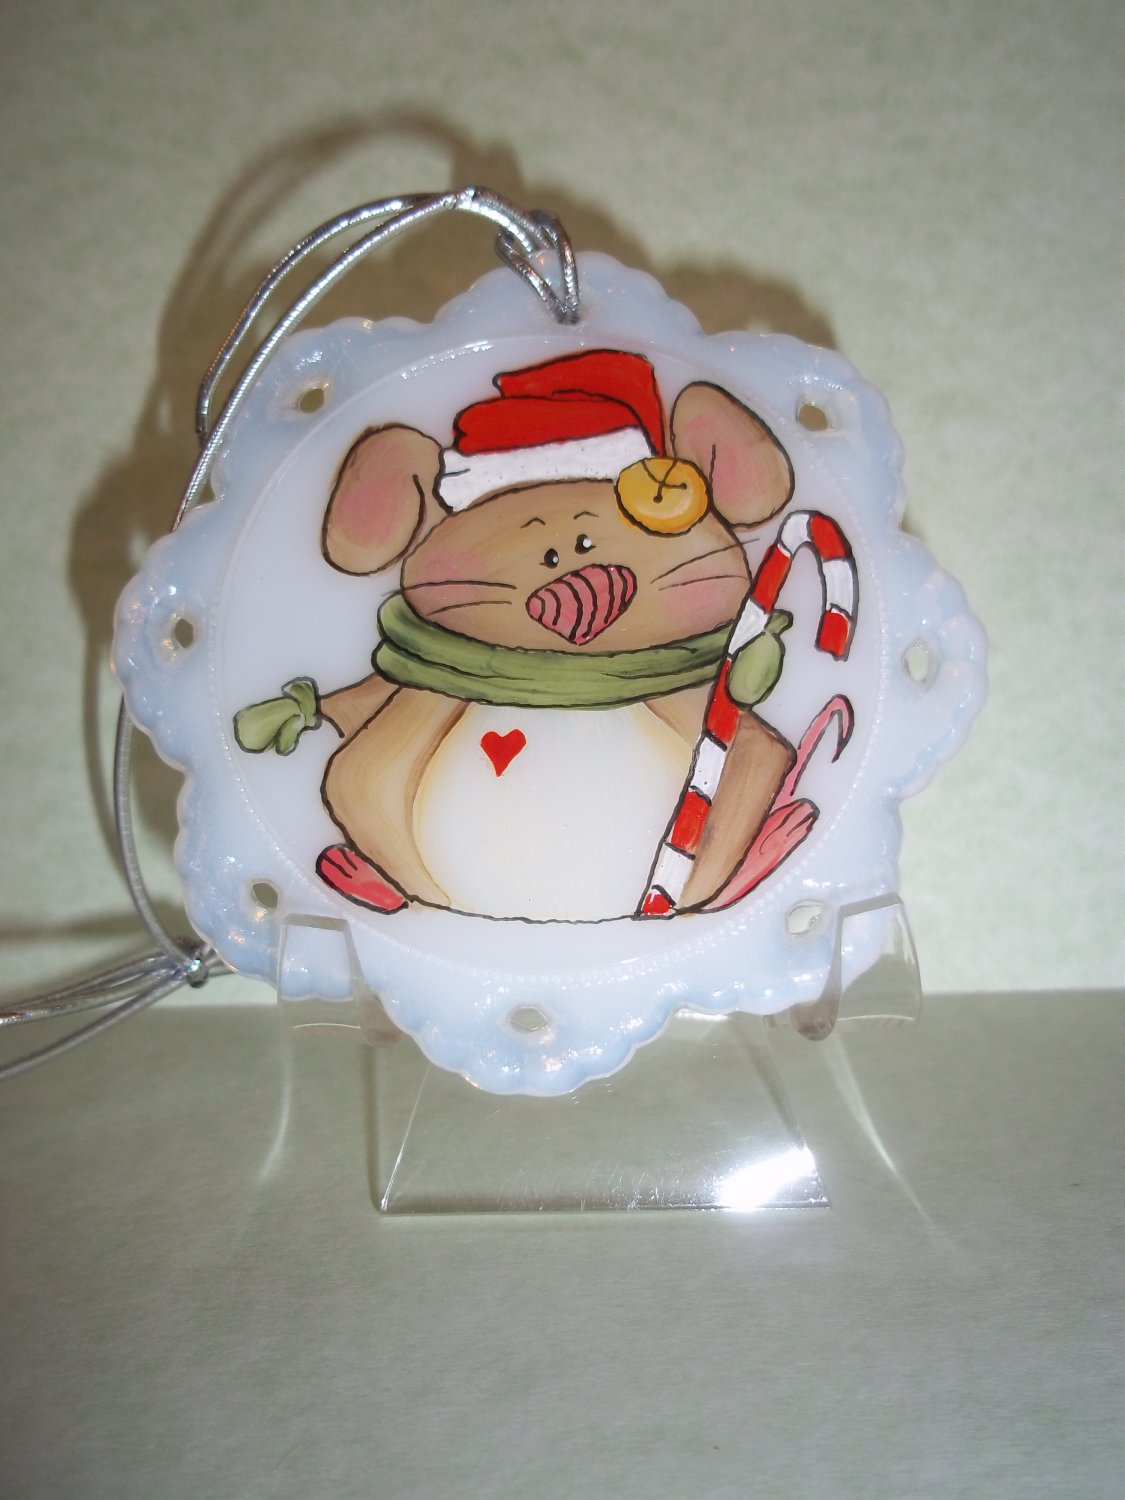 Fenton Glass Santa Mouse Christmas Ornament FAGCA Exclusive Ltd Ed of 19 Pieces